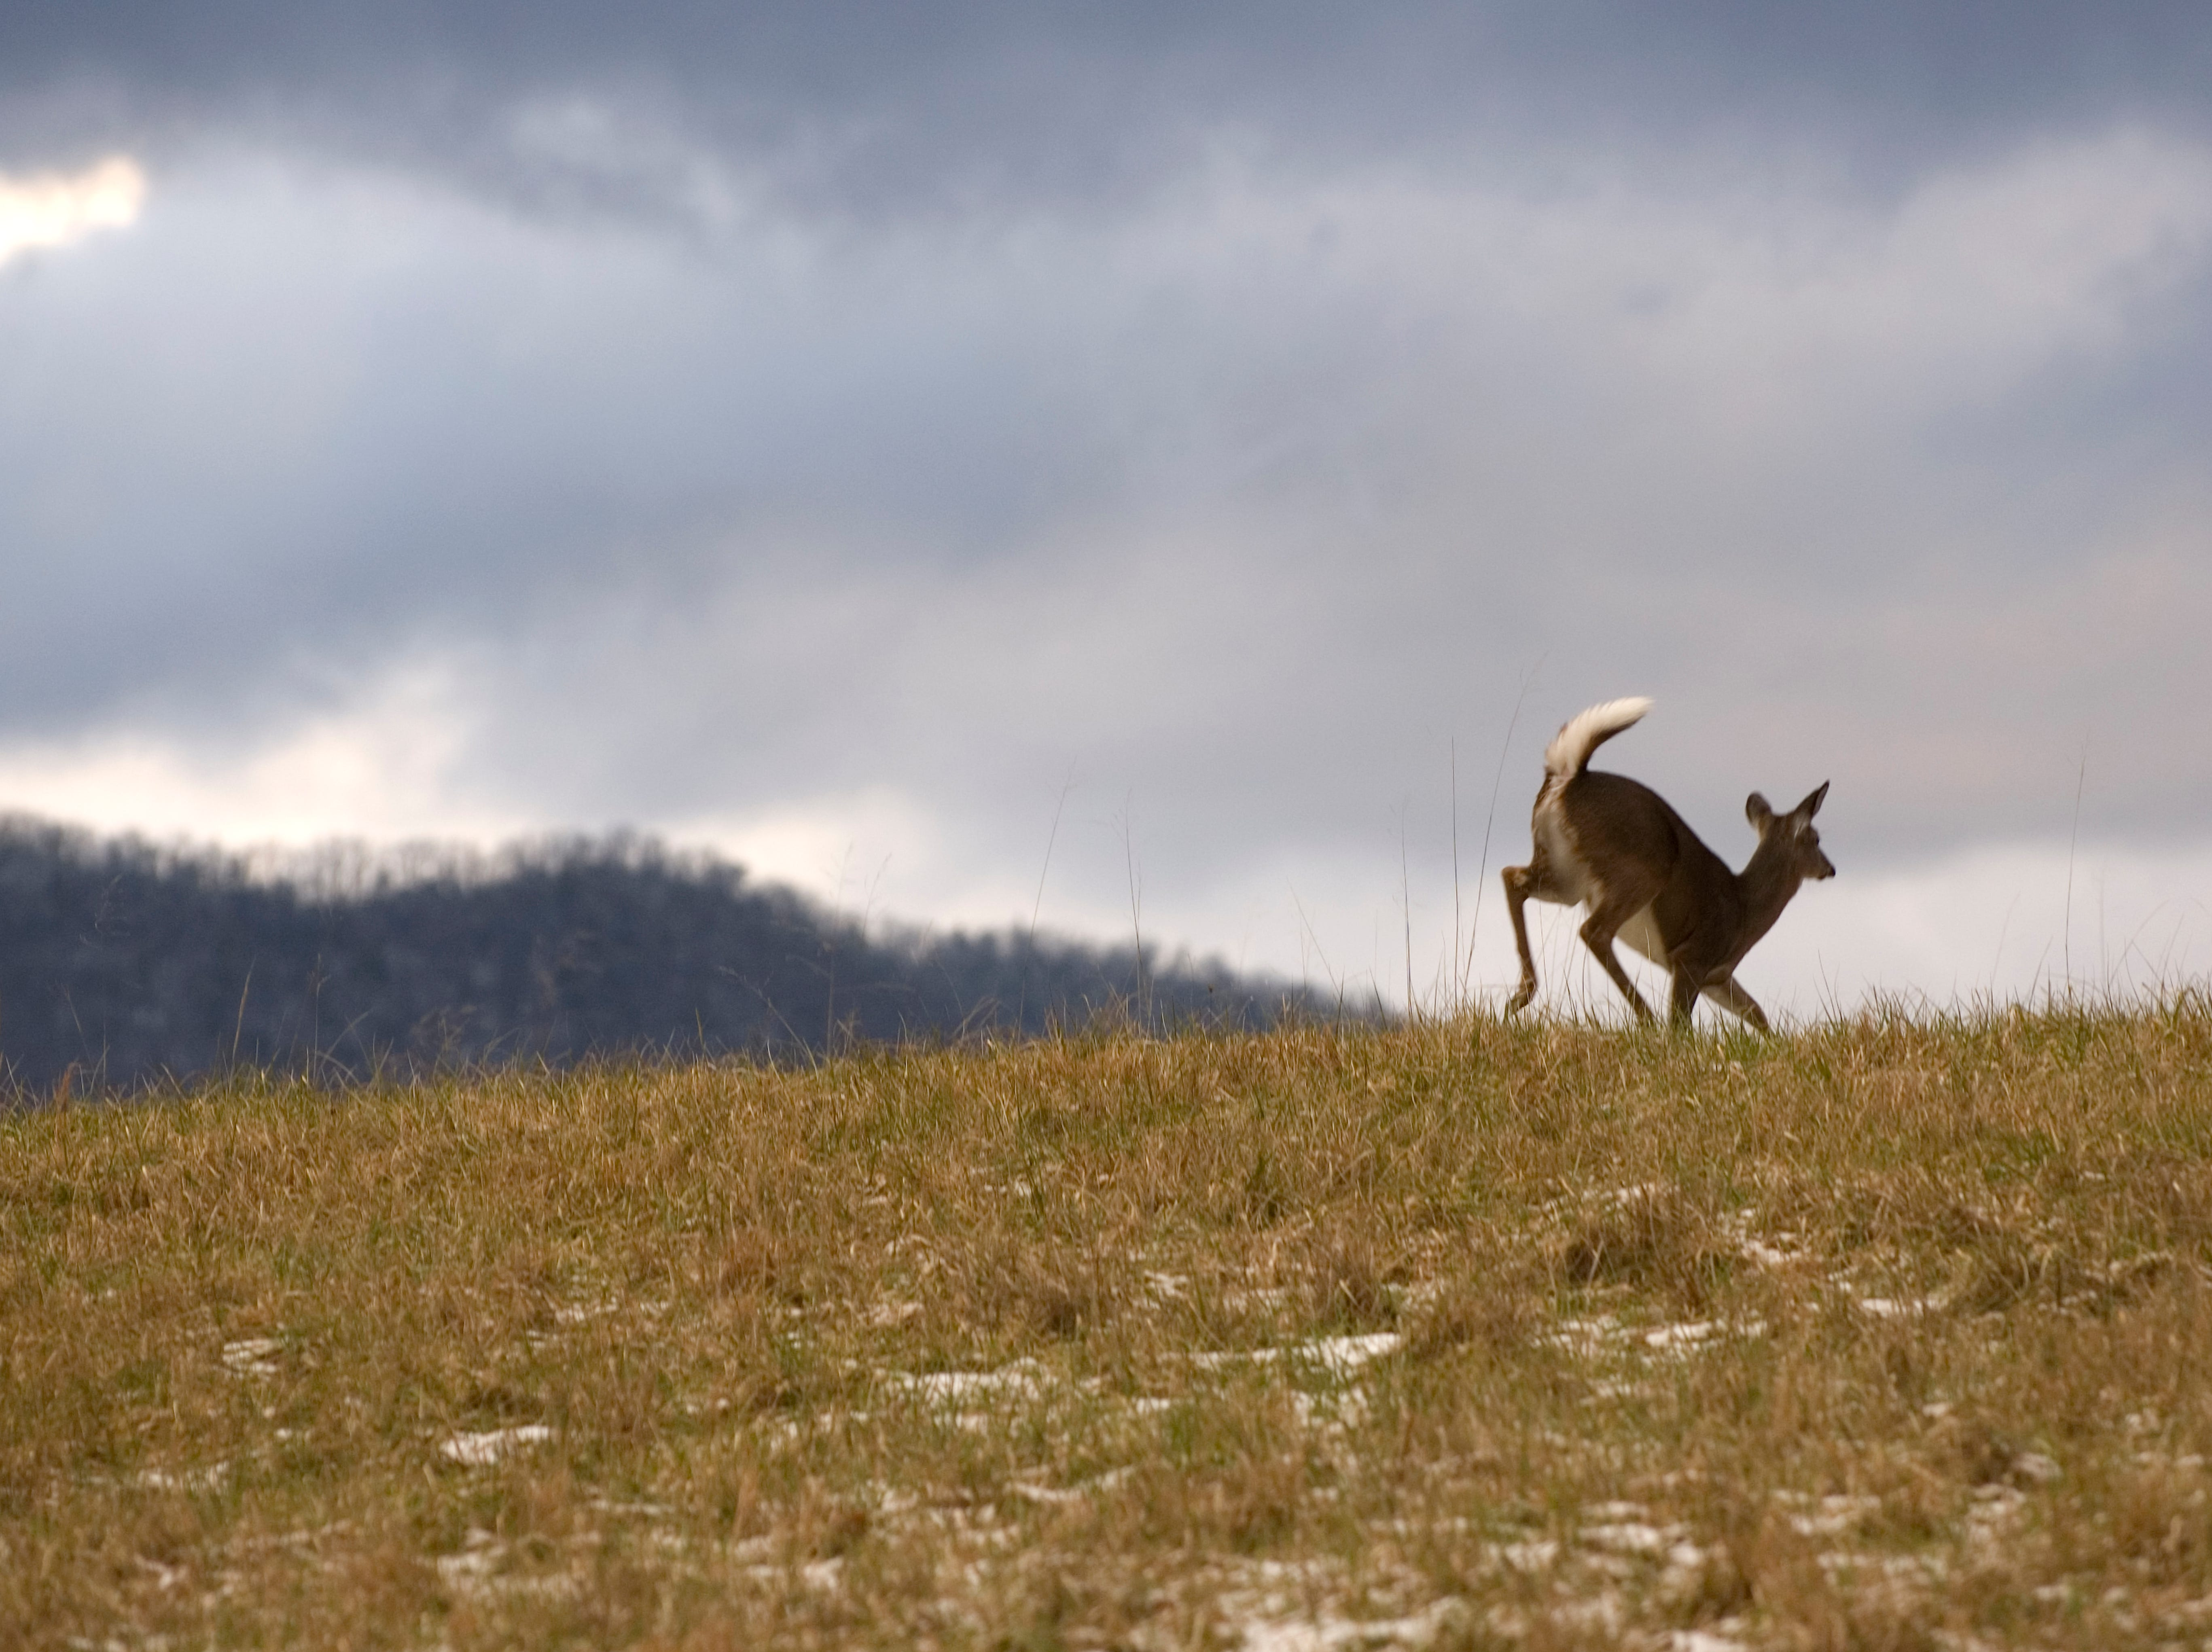 """A whitetail deer puts up a """"flag"""" to alert herd-mates of danger on Tuesday at Cades Cove in the Great Smoky Mountain National Park. GSMNP wildlife biologist Bill Stiver says visitors have an unique opportunity for viewing wildlife in Cades Cove which has one of the largest densities of deer in the park. """"But we've noticed an actual decrease in the Cades Cove deer population in the last 15 years which is possibly due to predators like bears, coyotes, and bobcats,"""" Stiver said. He cautions visitors not to approach wildlife too closely. """"We're trying to encourage people to observe from the roadside,"""" he said."""